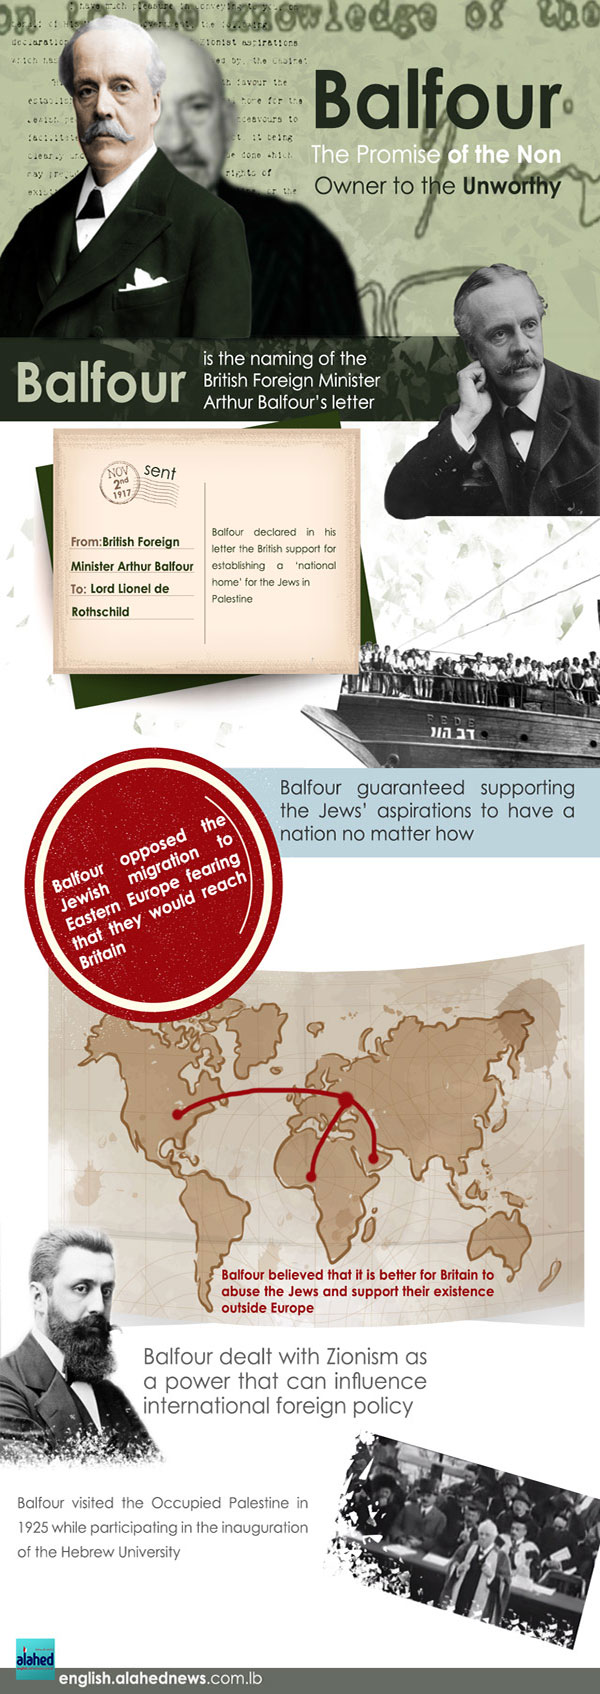 Balfour Declaration: The Promise of the Non-Owner to the Unworthy